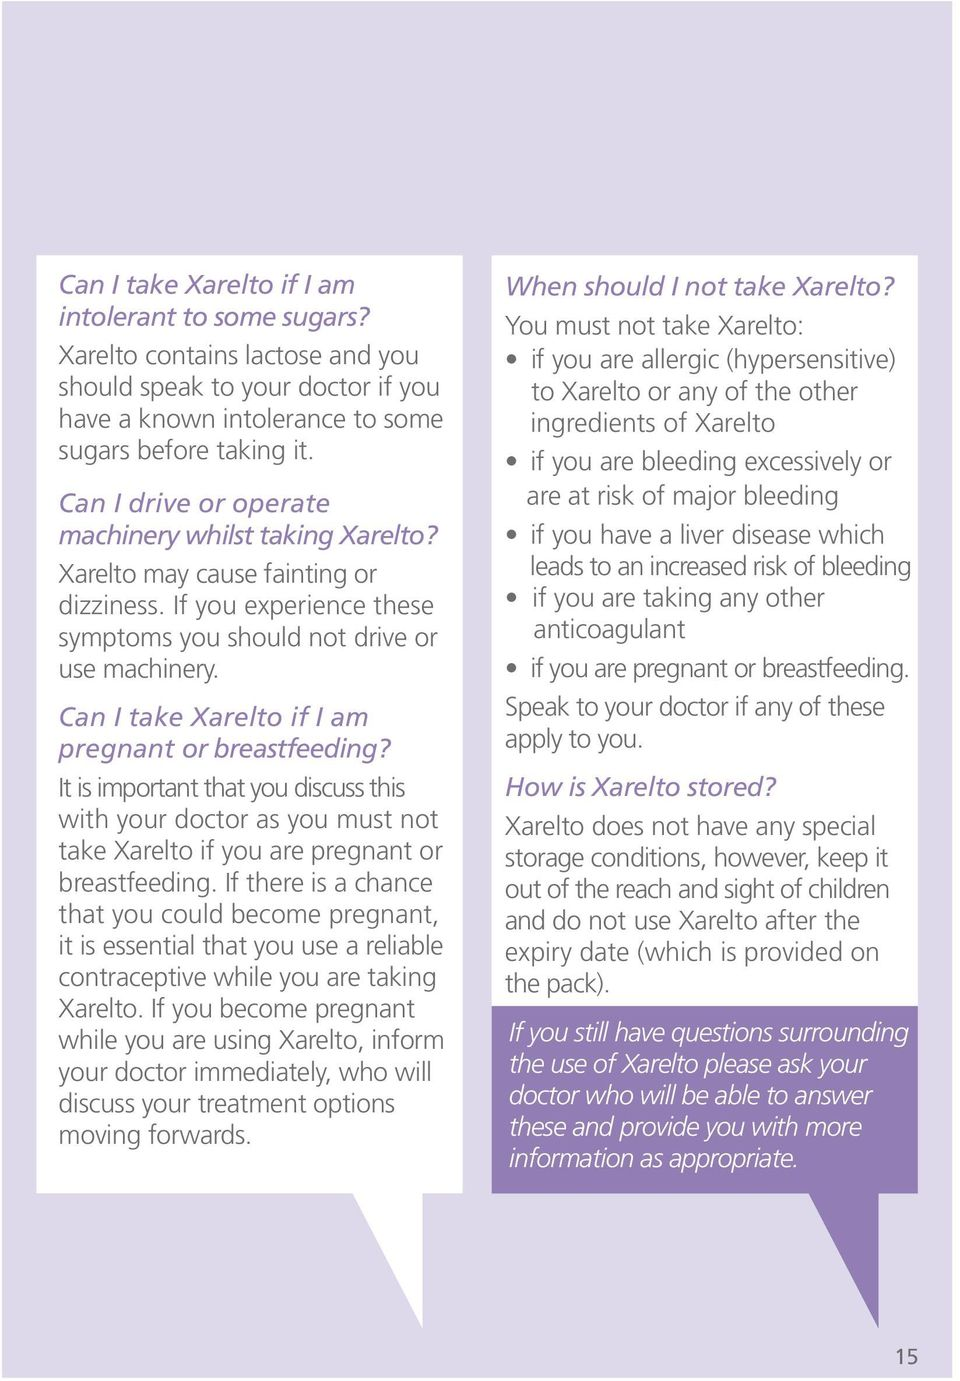 Can I take Xarelto if I am pregnant or breastfeeding? It is important that you discuss this with your doctor as you must not take Xarelto if you are pregnant or breastfeeding.